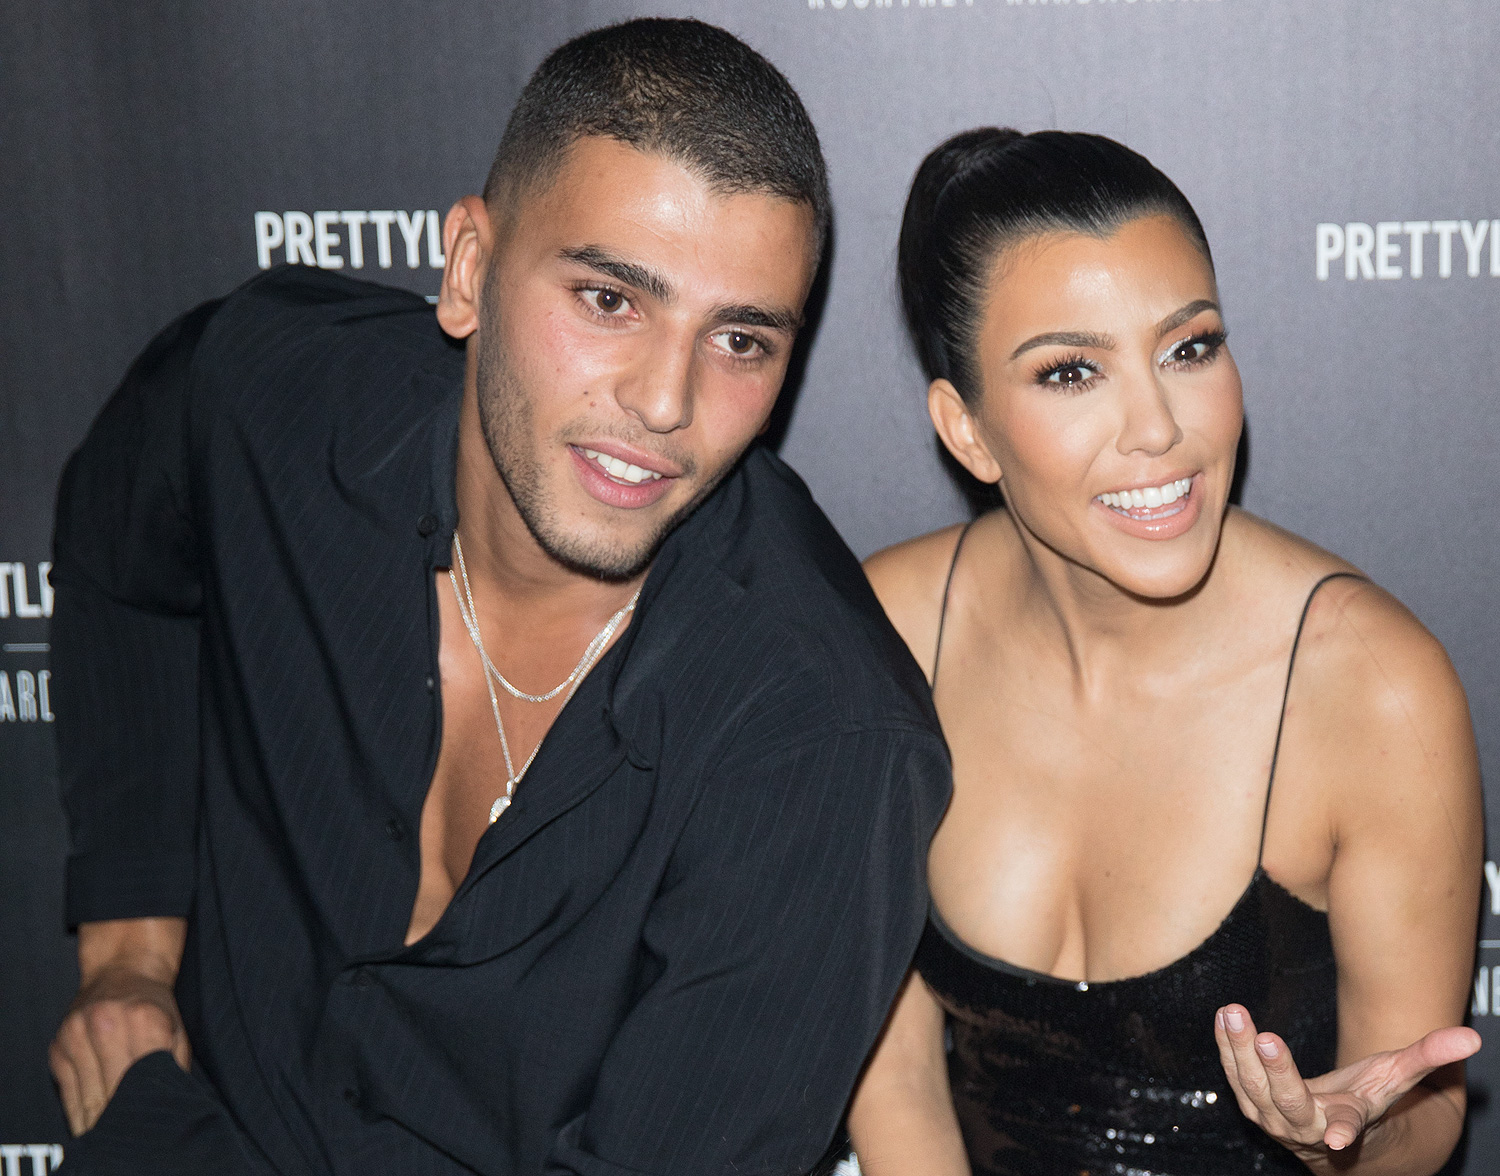 EXCLUSIVE: Kourtney Kardashian and her boyfriend Younes Bendjima are seen together inside Poppy in West Hollywood